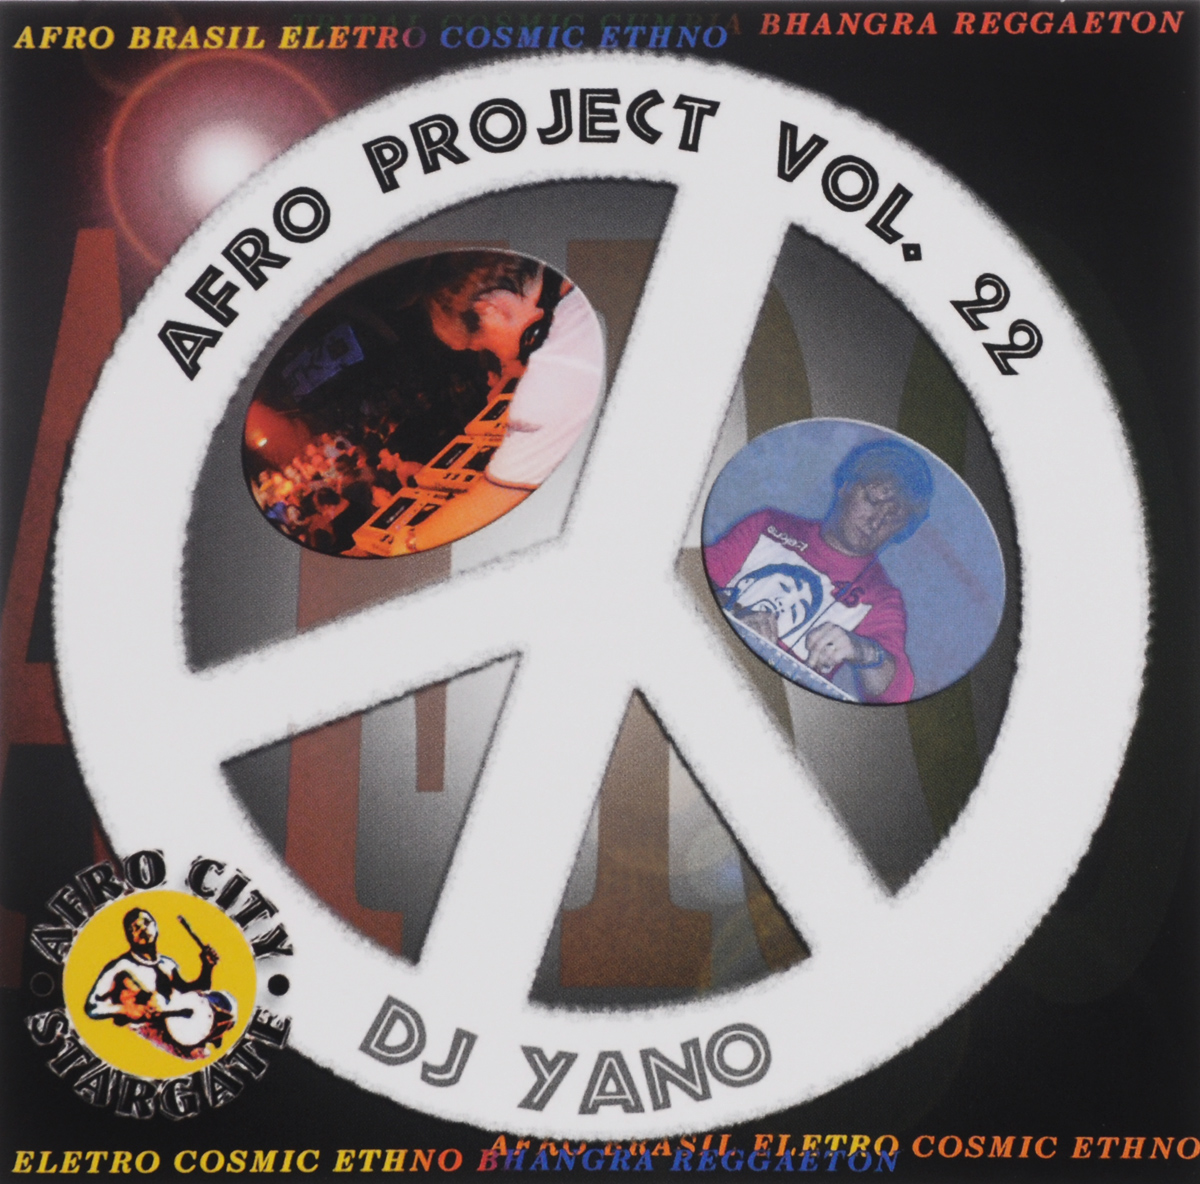 Dj Yano Dj Yano. Afro Project. Vol. 22 dj yano dj yano afro project vol 24 special limited edition cd dvd